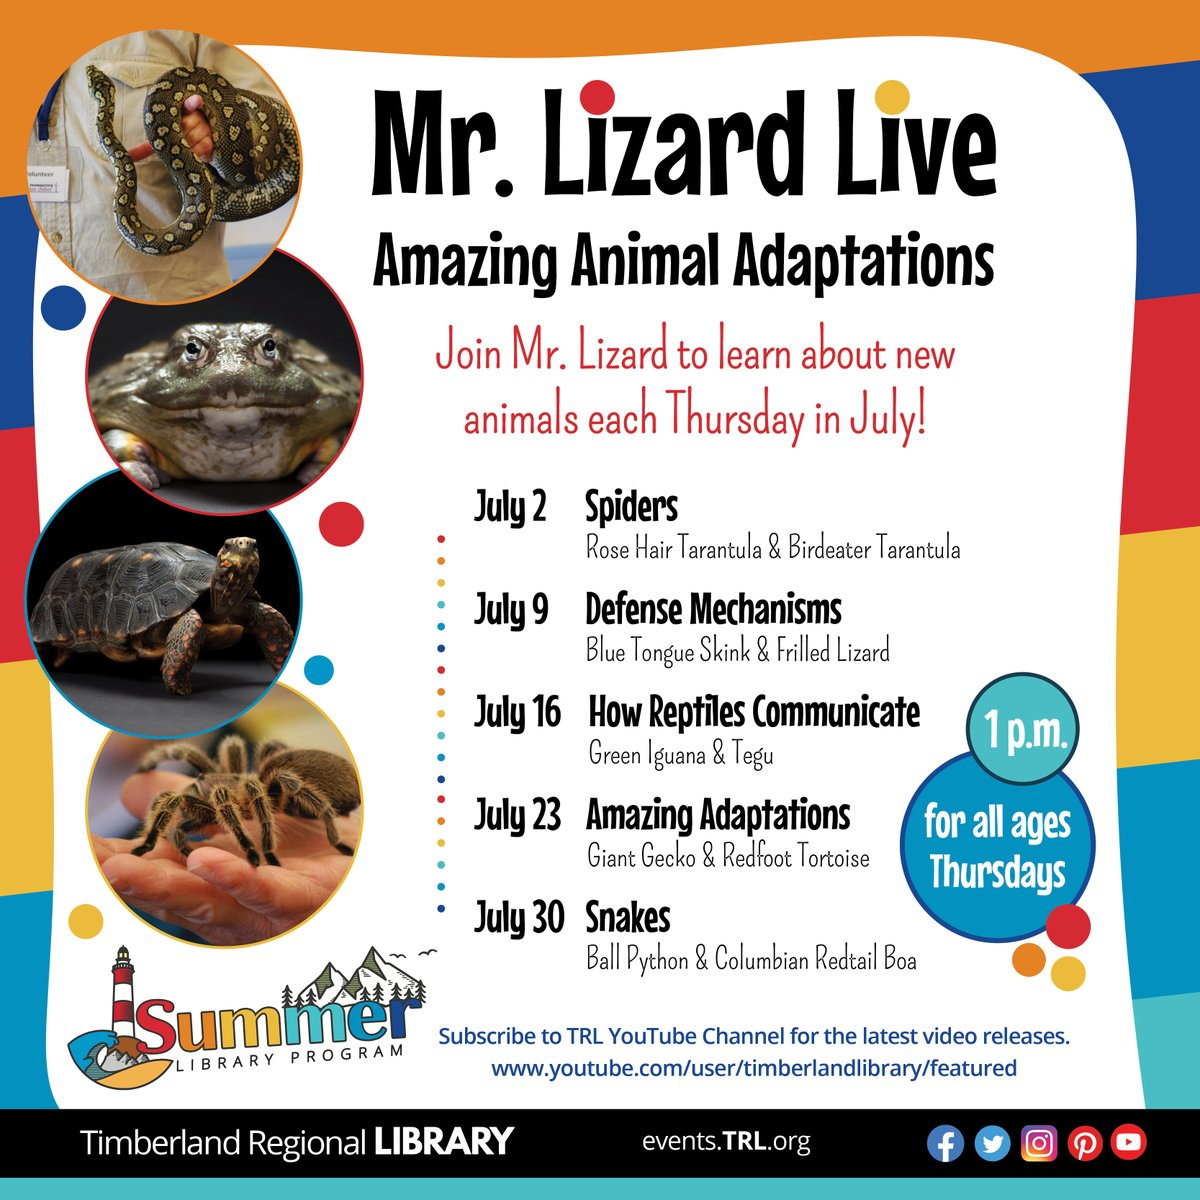 Join Mr. Lizard to learn about new animals each Thursday in July at 1 p.m. July 9th is all about animals who use defense mechanisms, such as the Blue Tongue Skink and the Frilled Lizard. Enjoy the show on the Timberland Library YouTube Channel. https://www.youtube.com/user/timberlandlibrary/featured …pic.twitter.com/HiaWucKszG